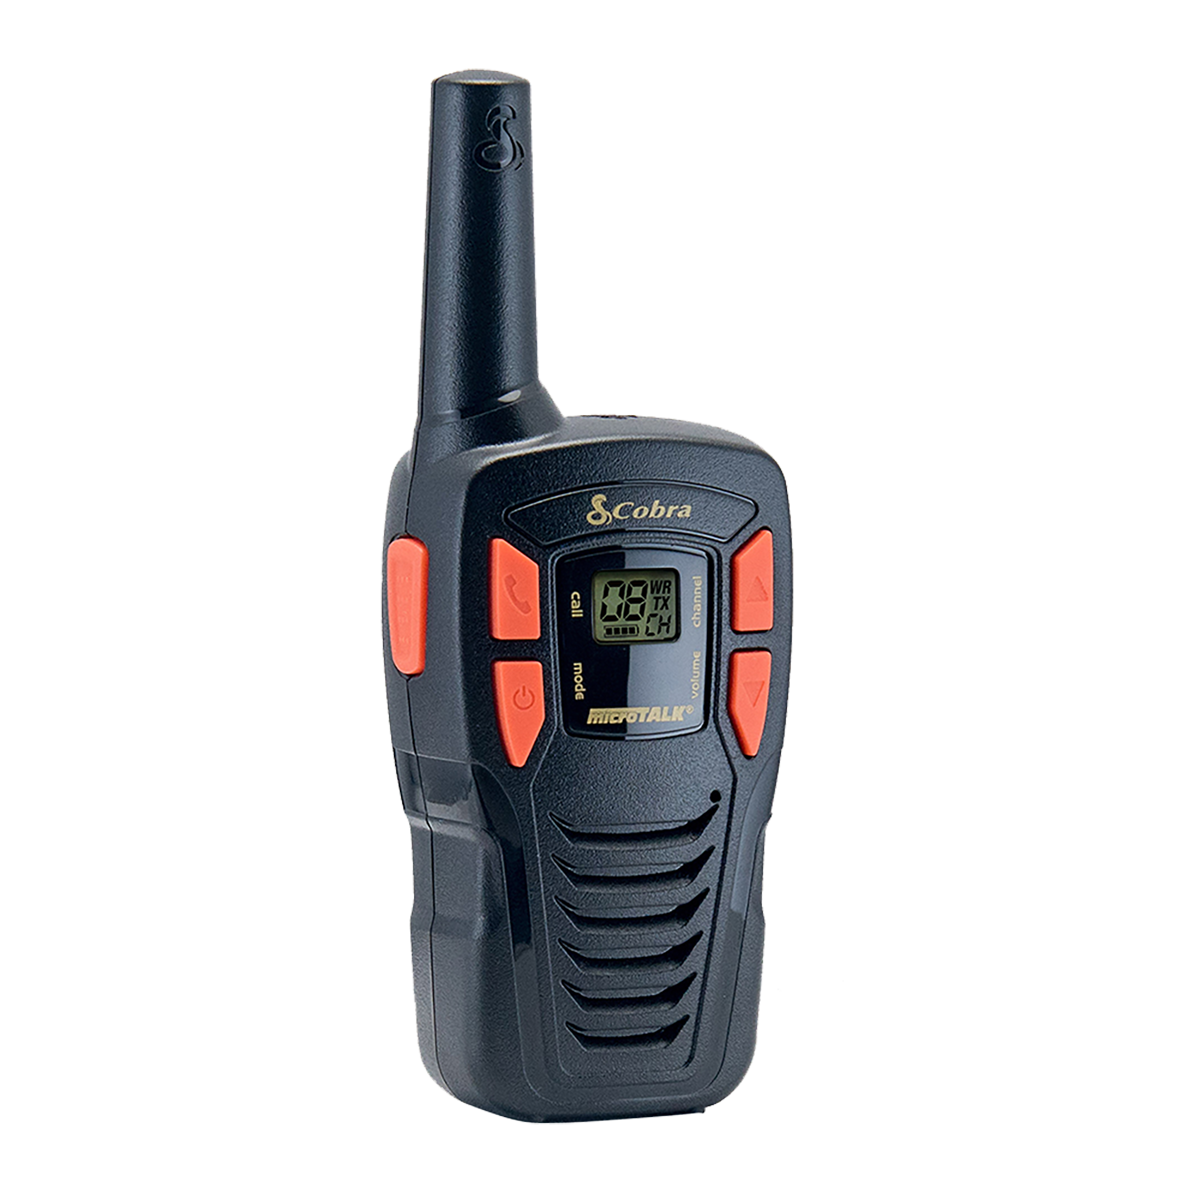 Cobra CXT195 16-Mile GMRS/FRS Two-Way Radio Walkie Talkie – Cobra FRS